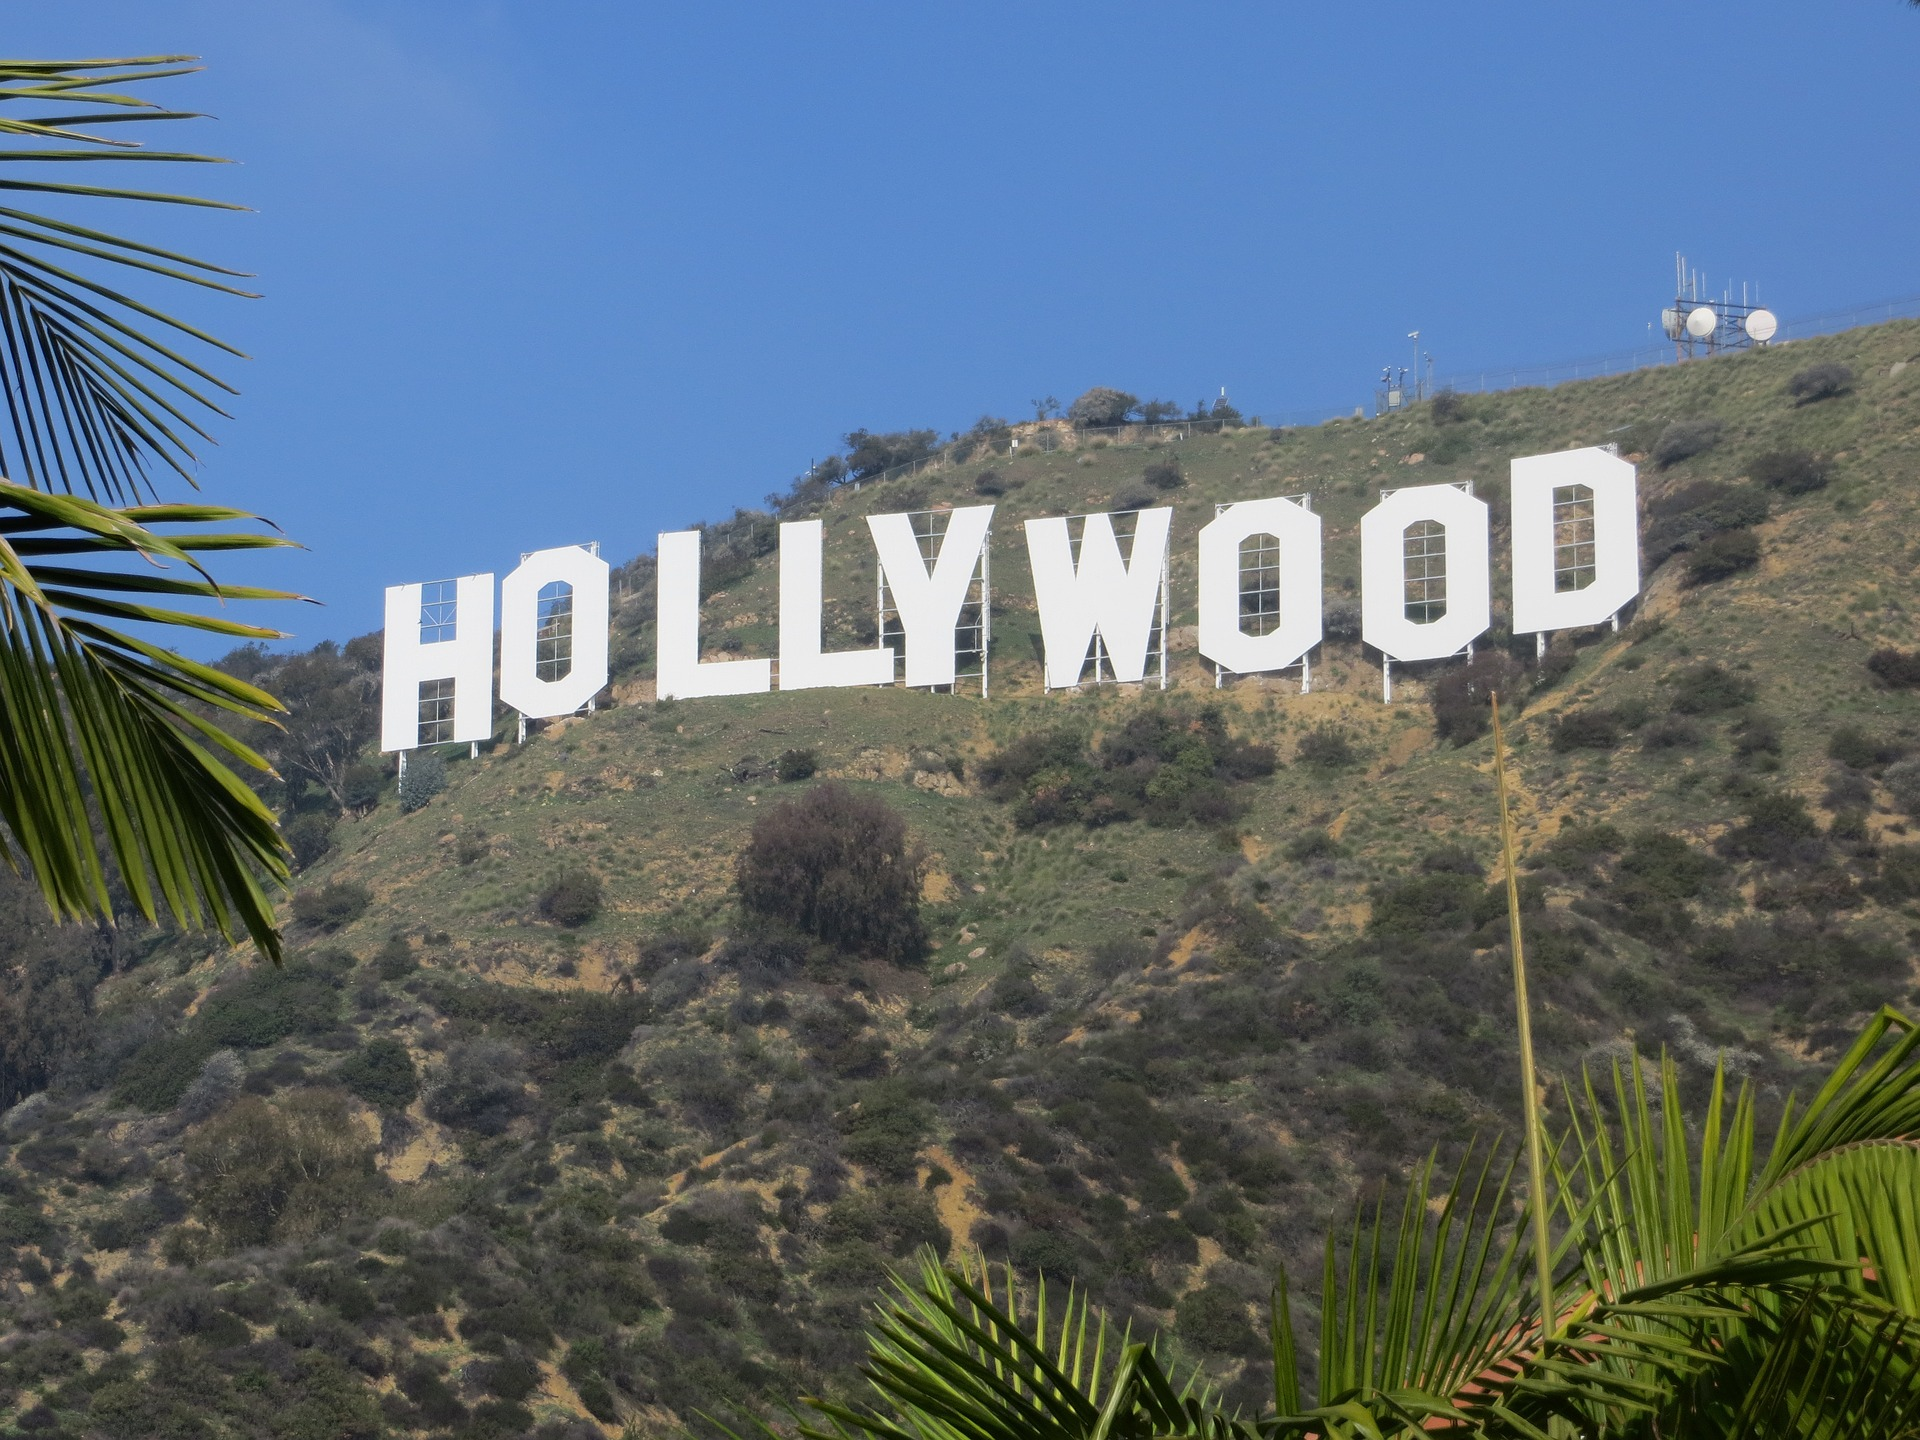 Great Places to Visit in the United States: Hollywood